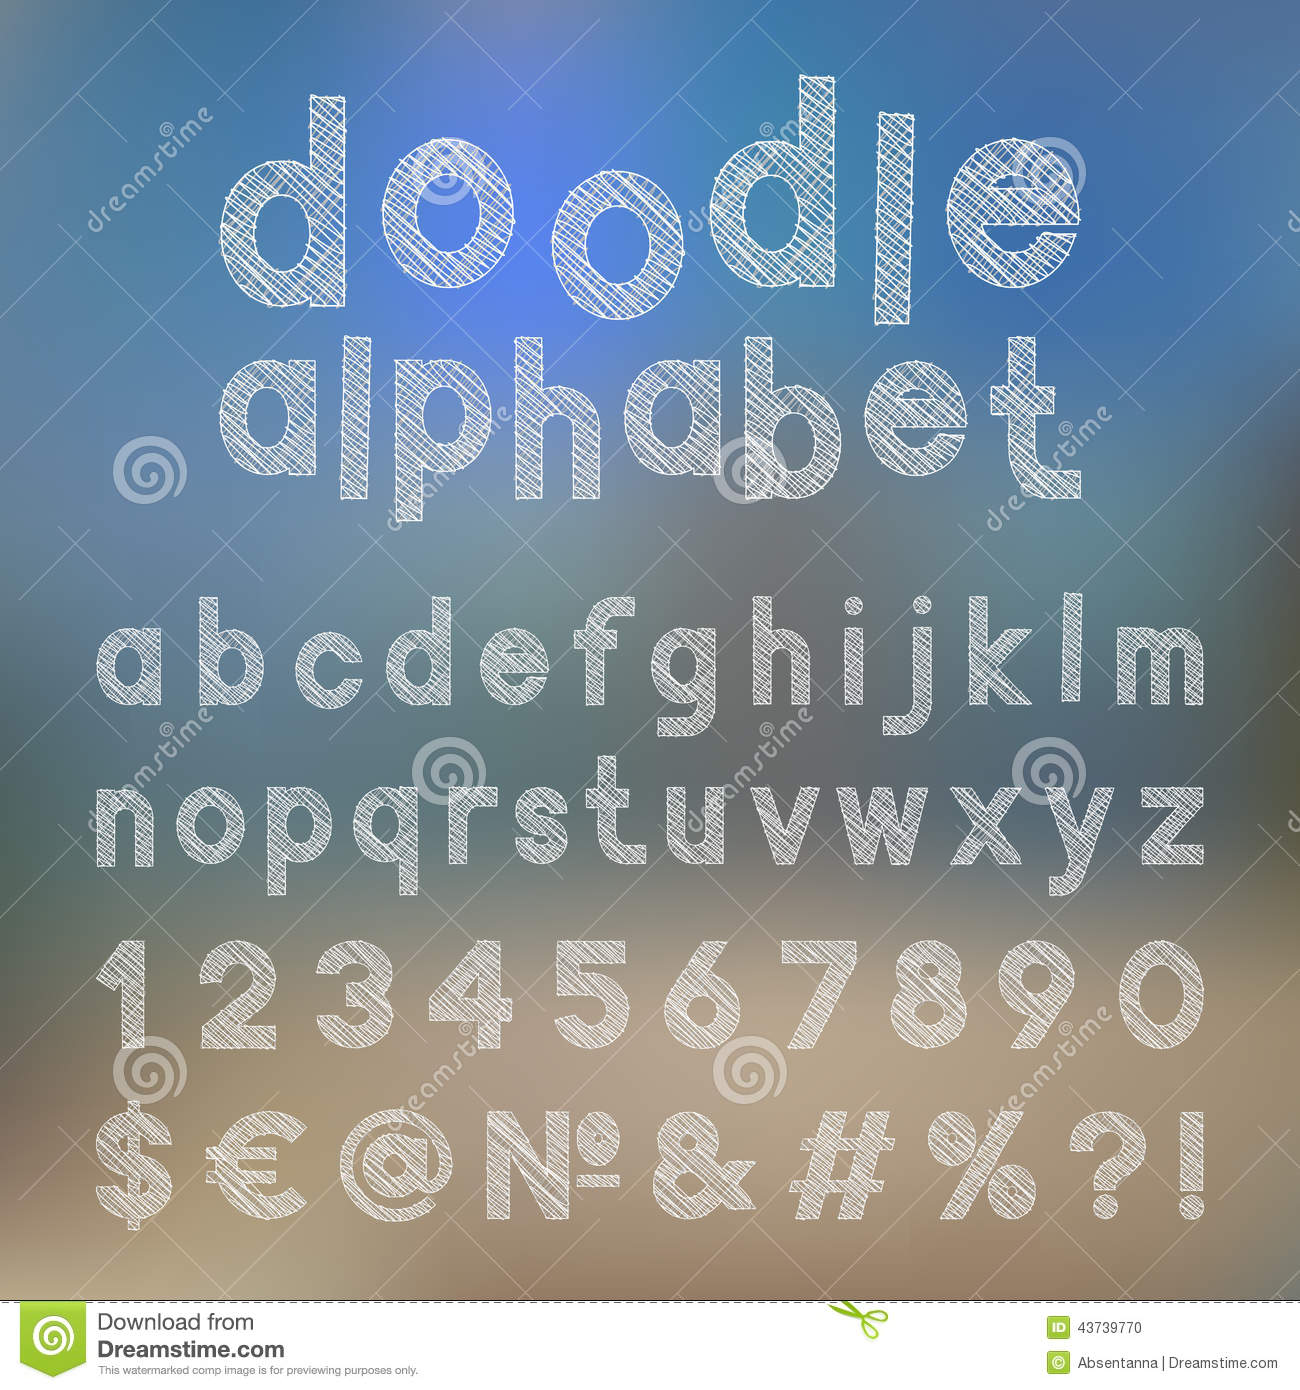 Decorative doodle alphabet